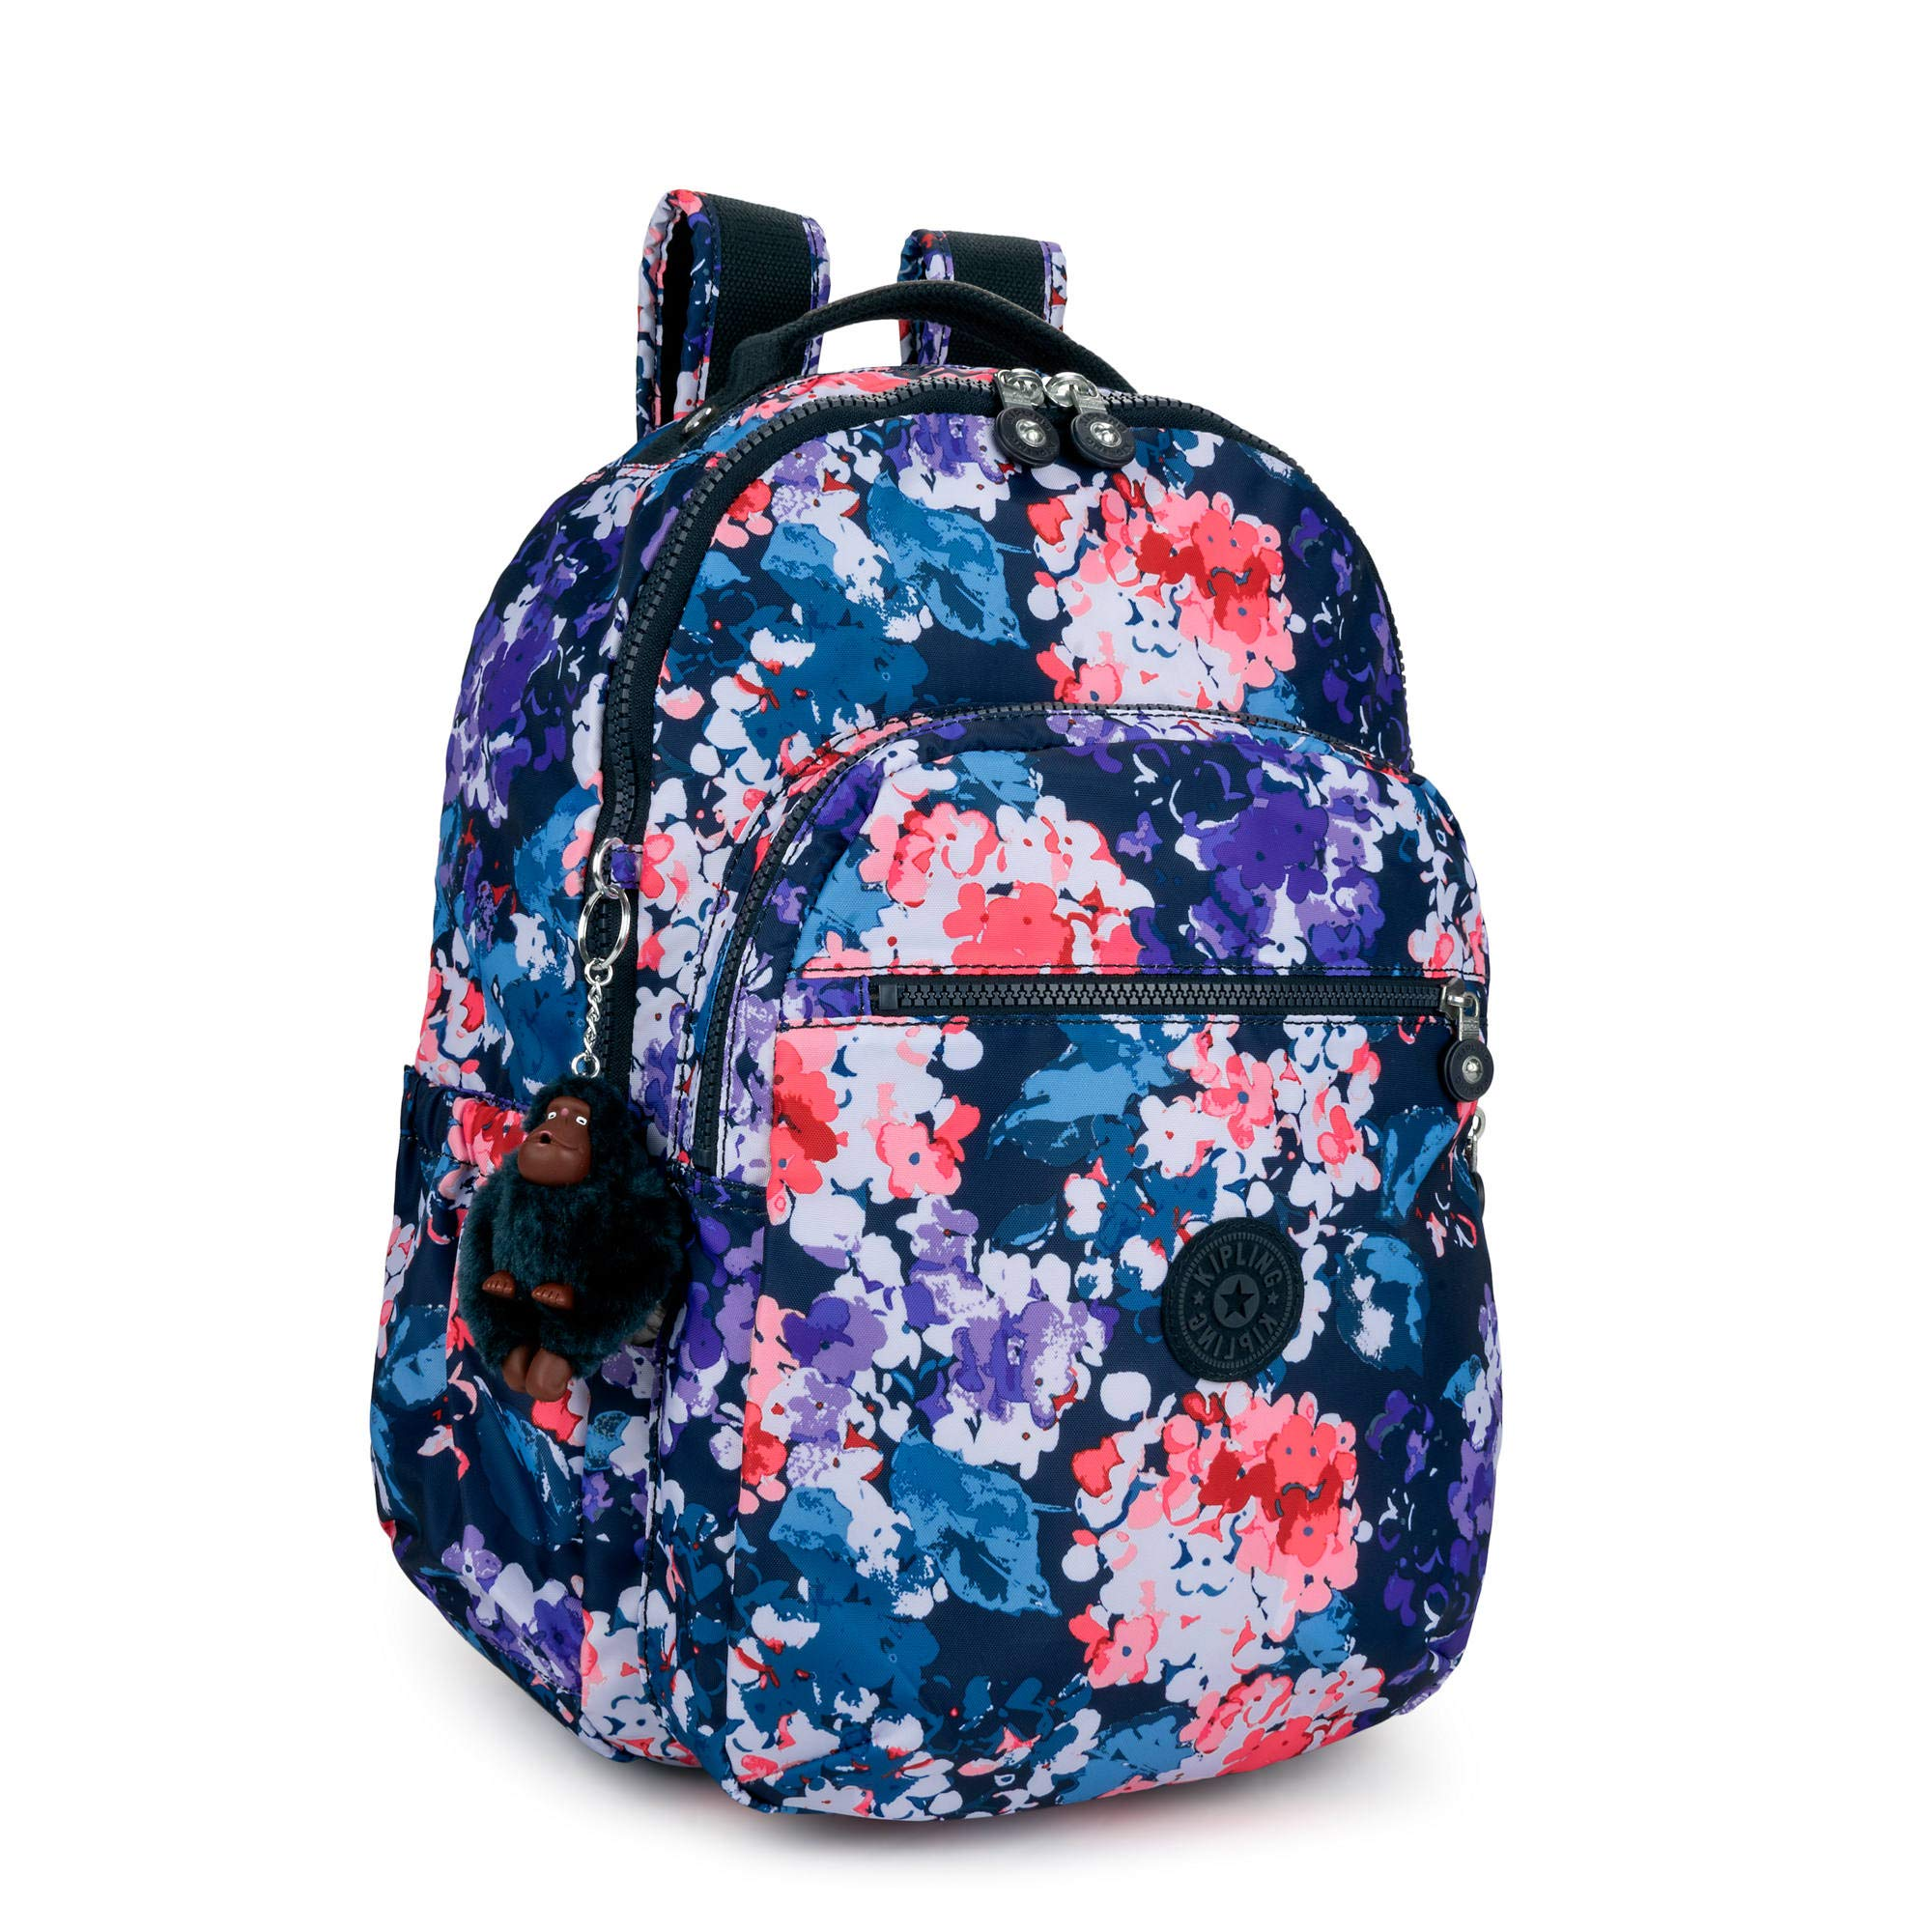 Kipling Seoul Go Large Printed Laptop 15'' Backpack One Size Blushing Blooms by Kipling (Image #2)